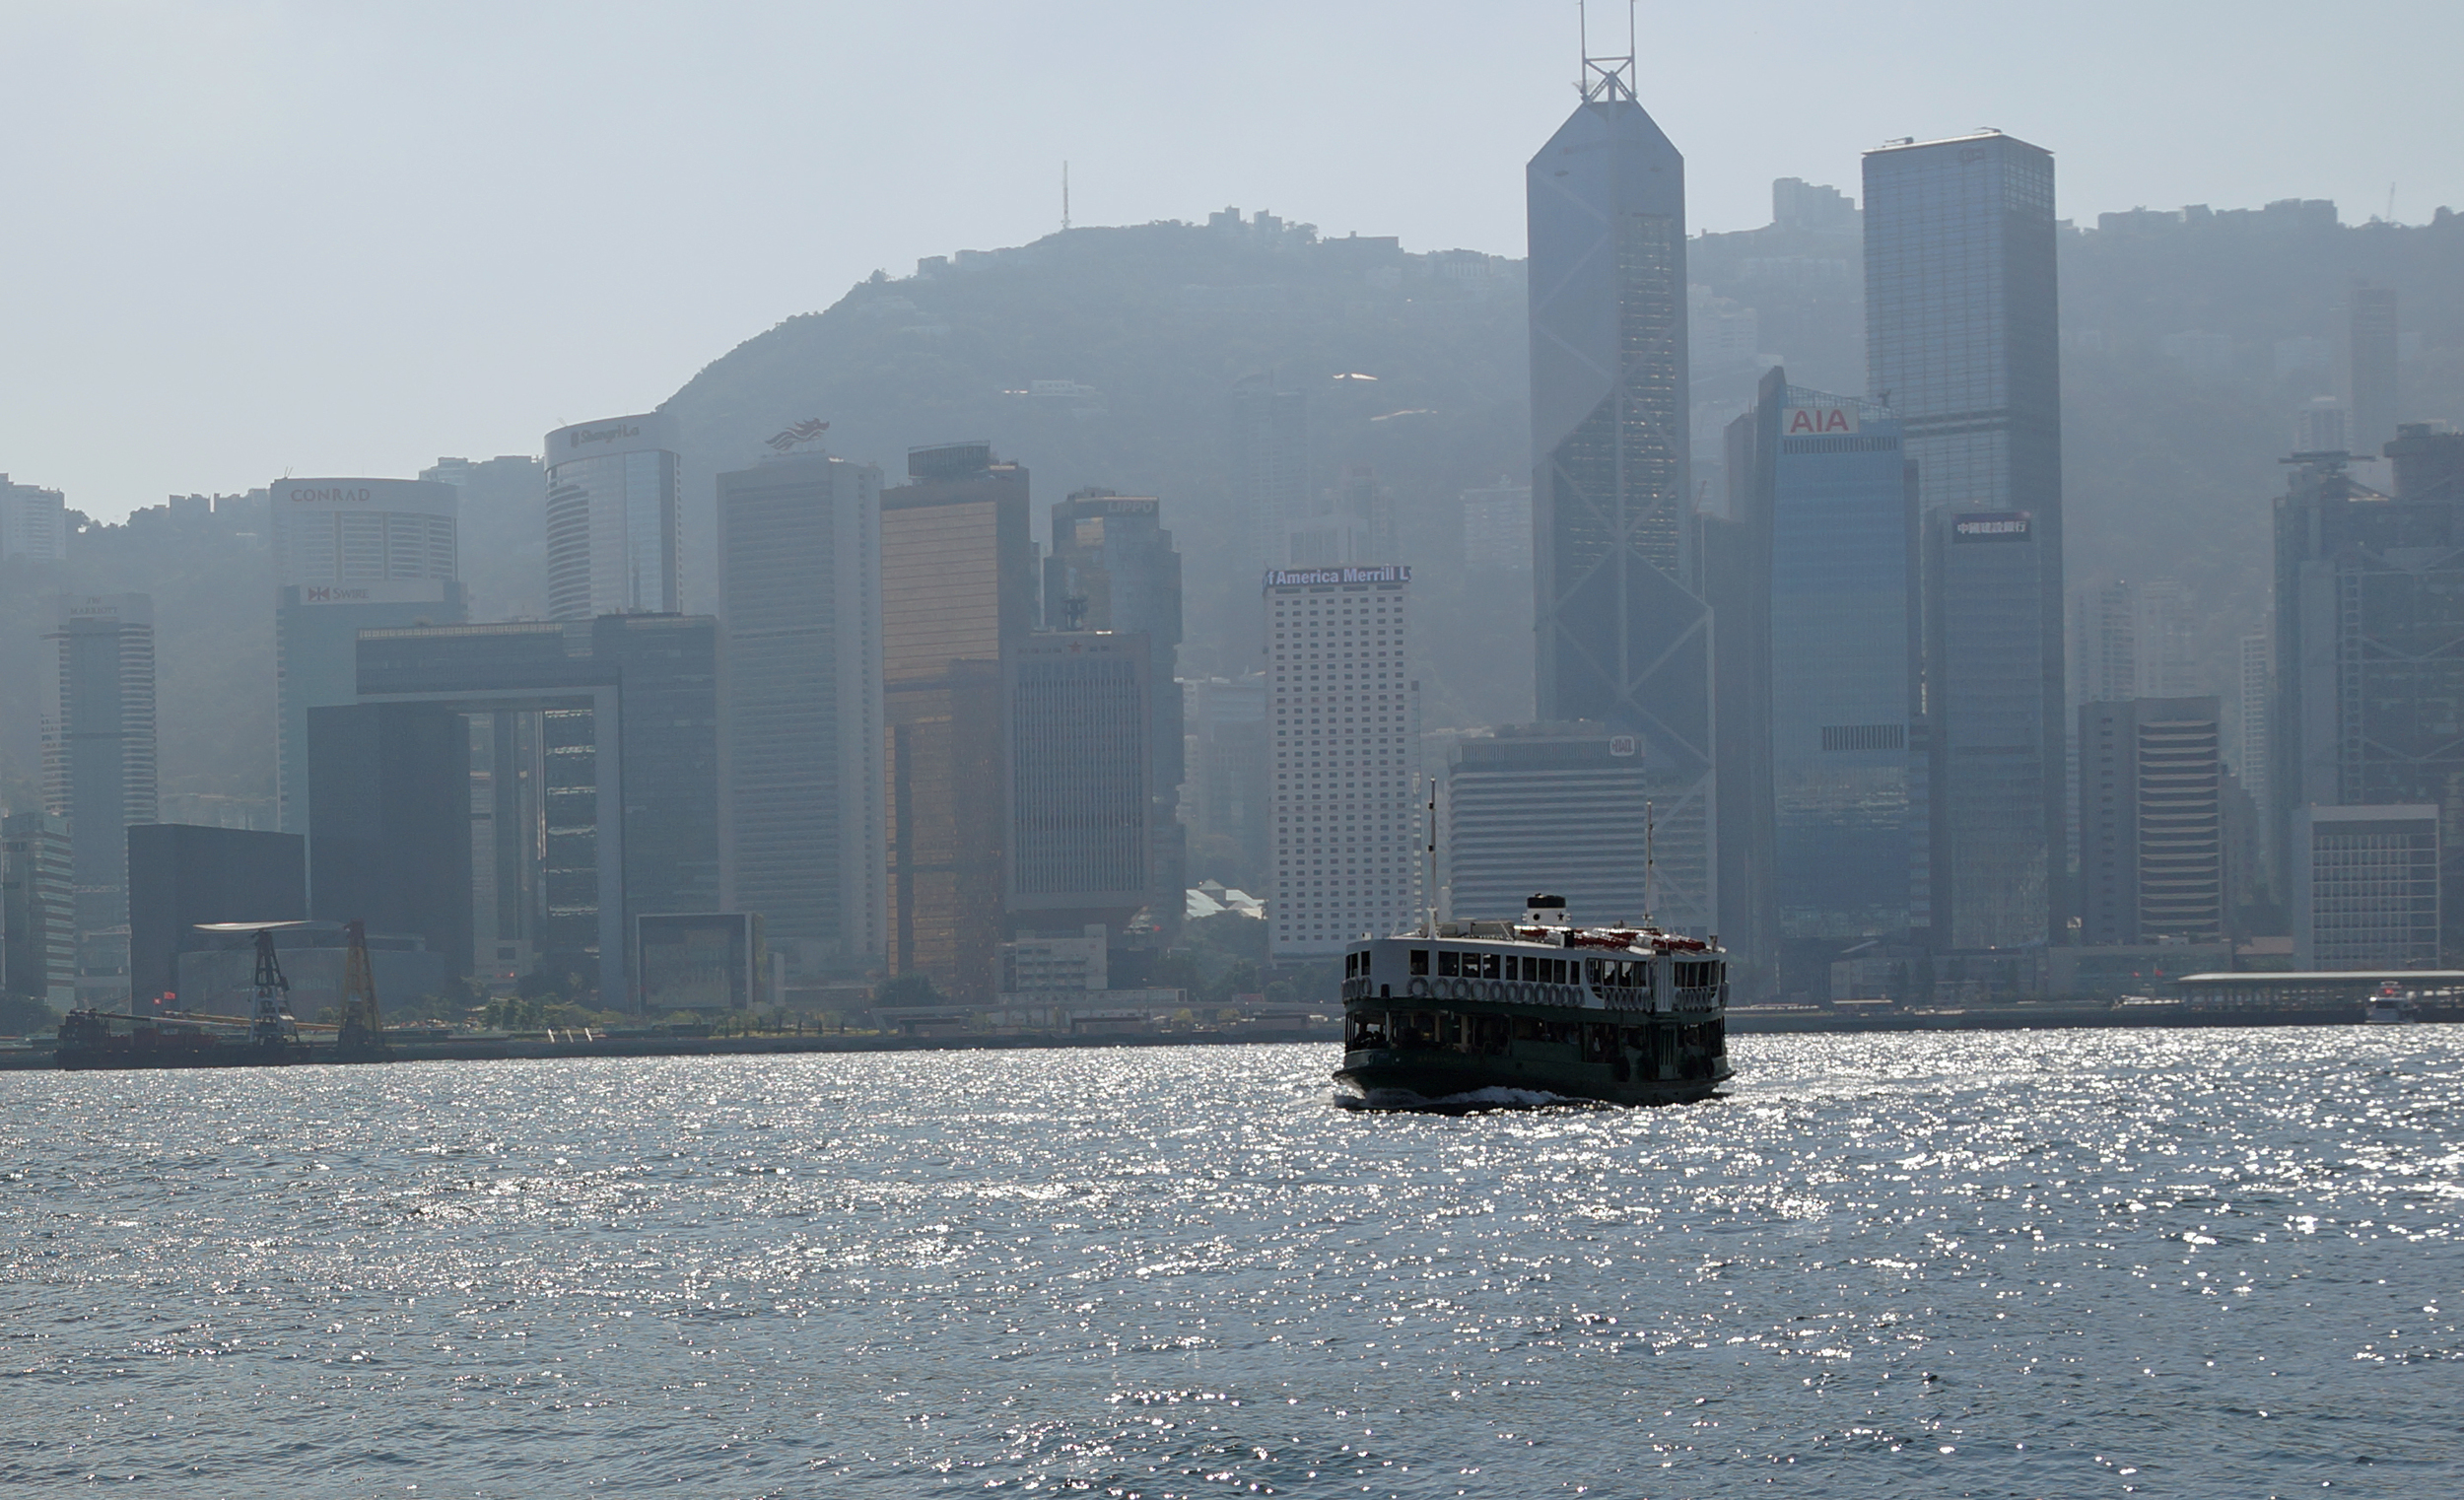 One of the best things you can do in Hong Kong is one of the simple things and that is to ride the Star Ferry.